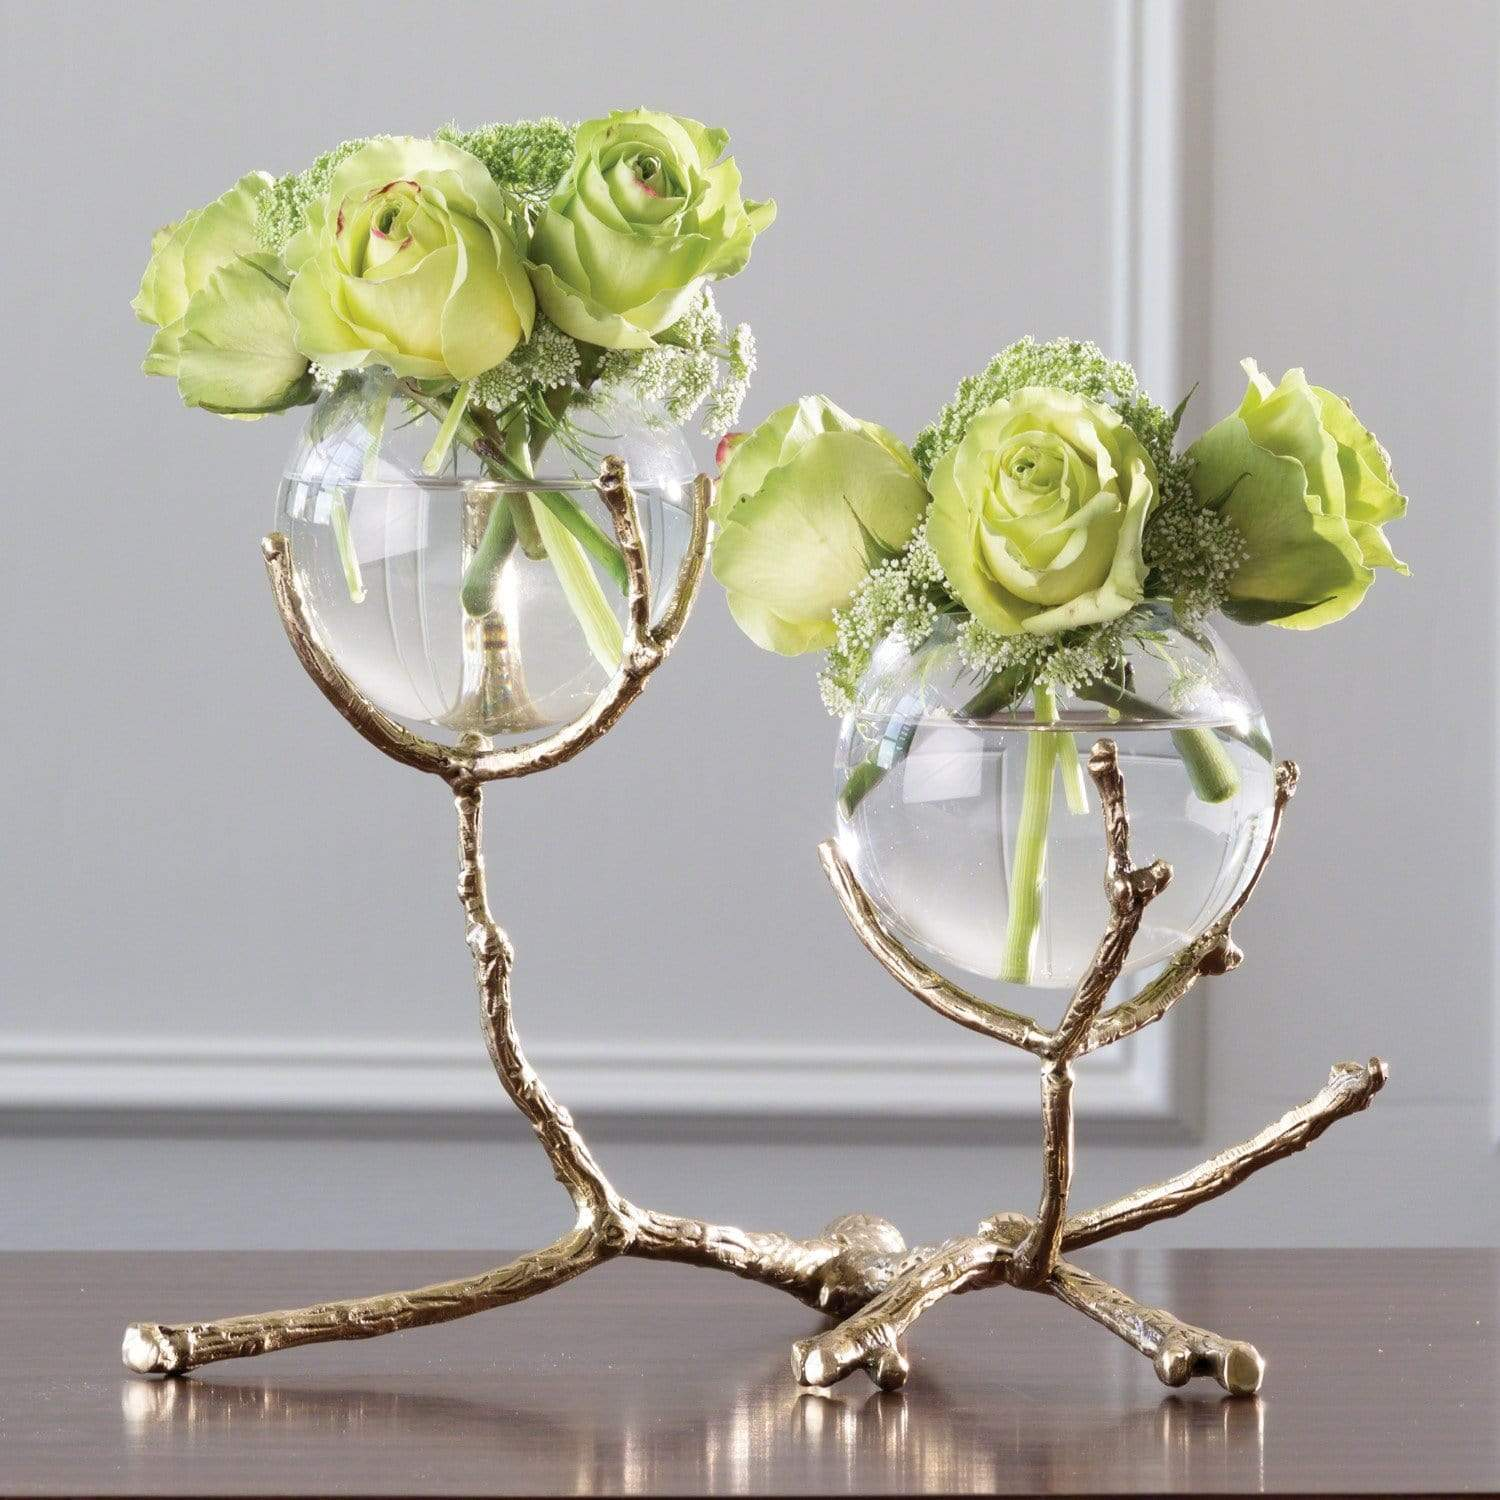 Global Views Global Views Twig 2 Vase Holder Brass 9.92655